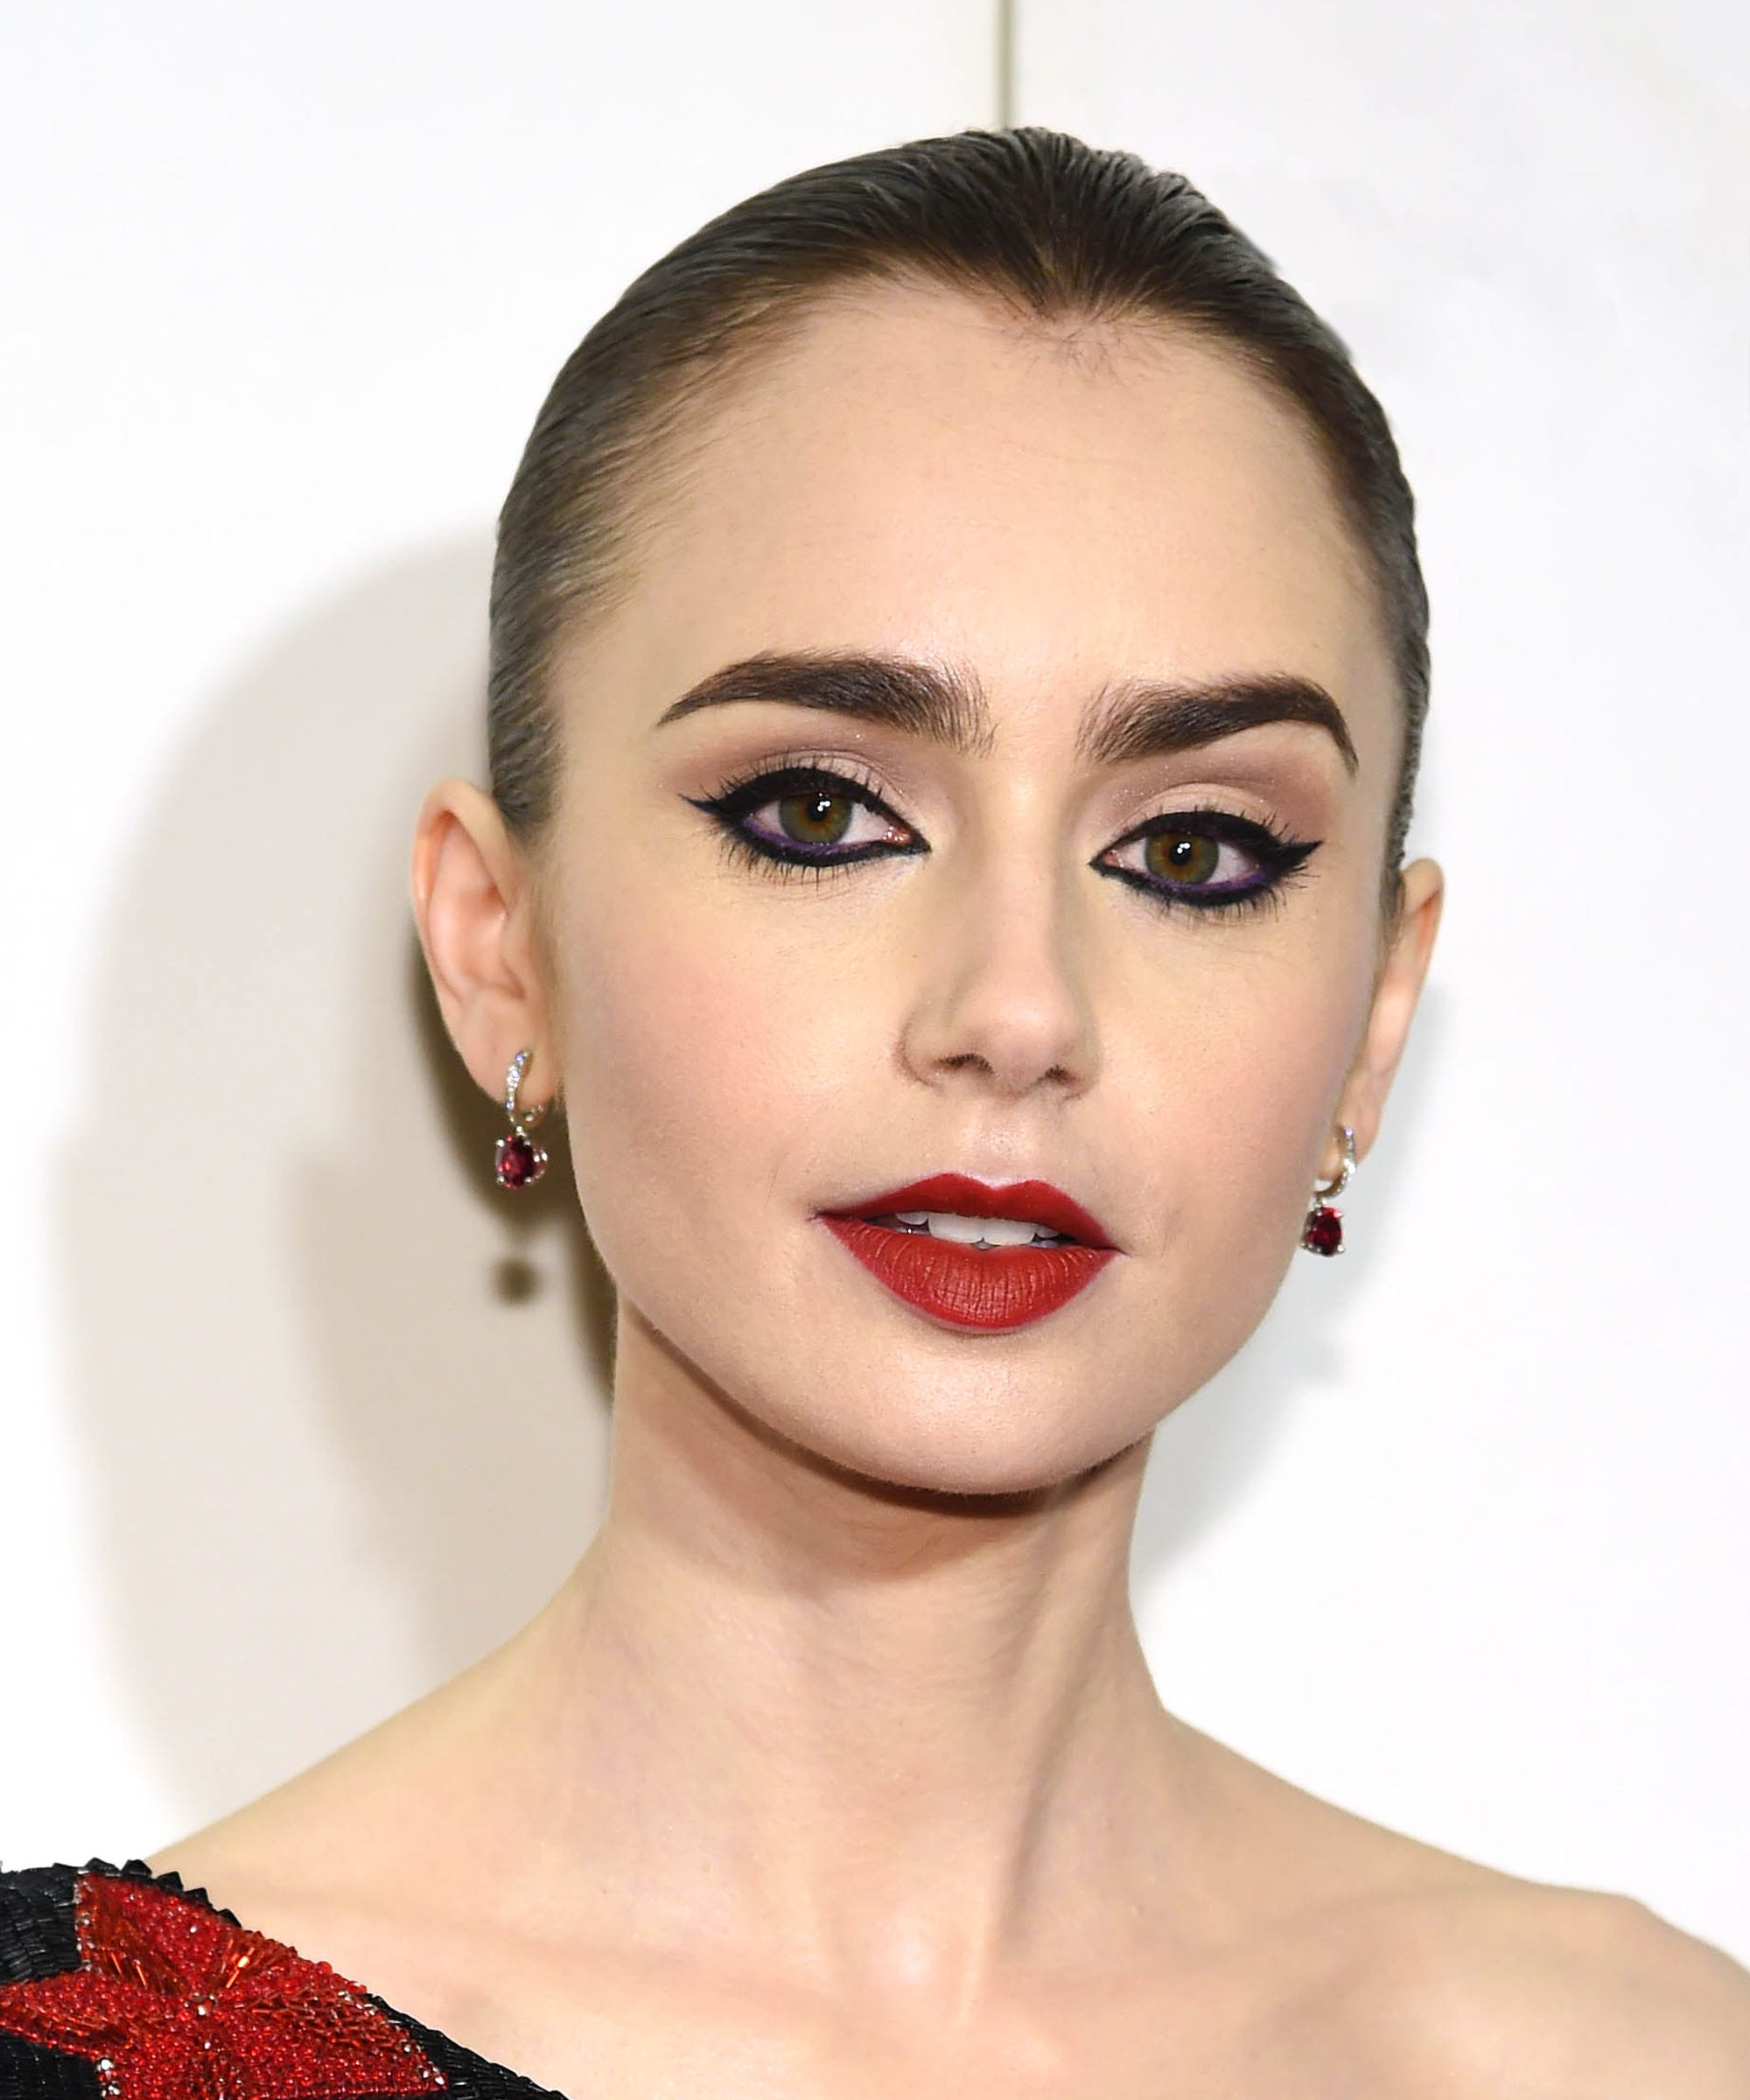 37 Celebrities Who Ditch Makeup On Their Day Off